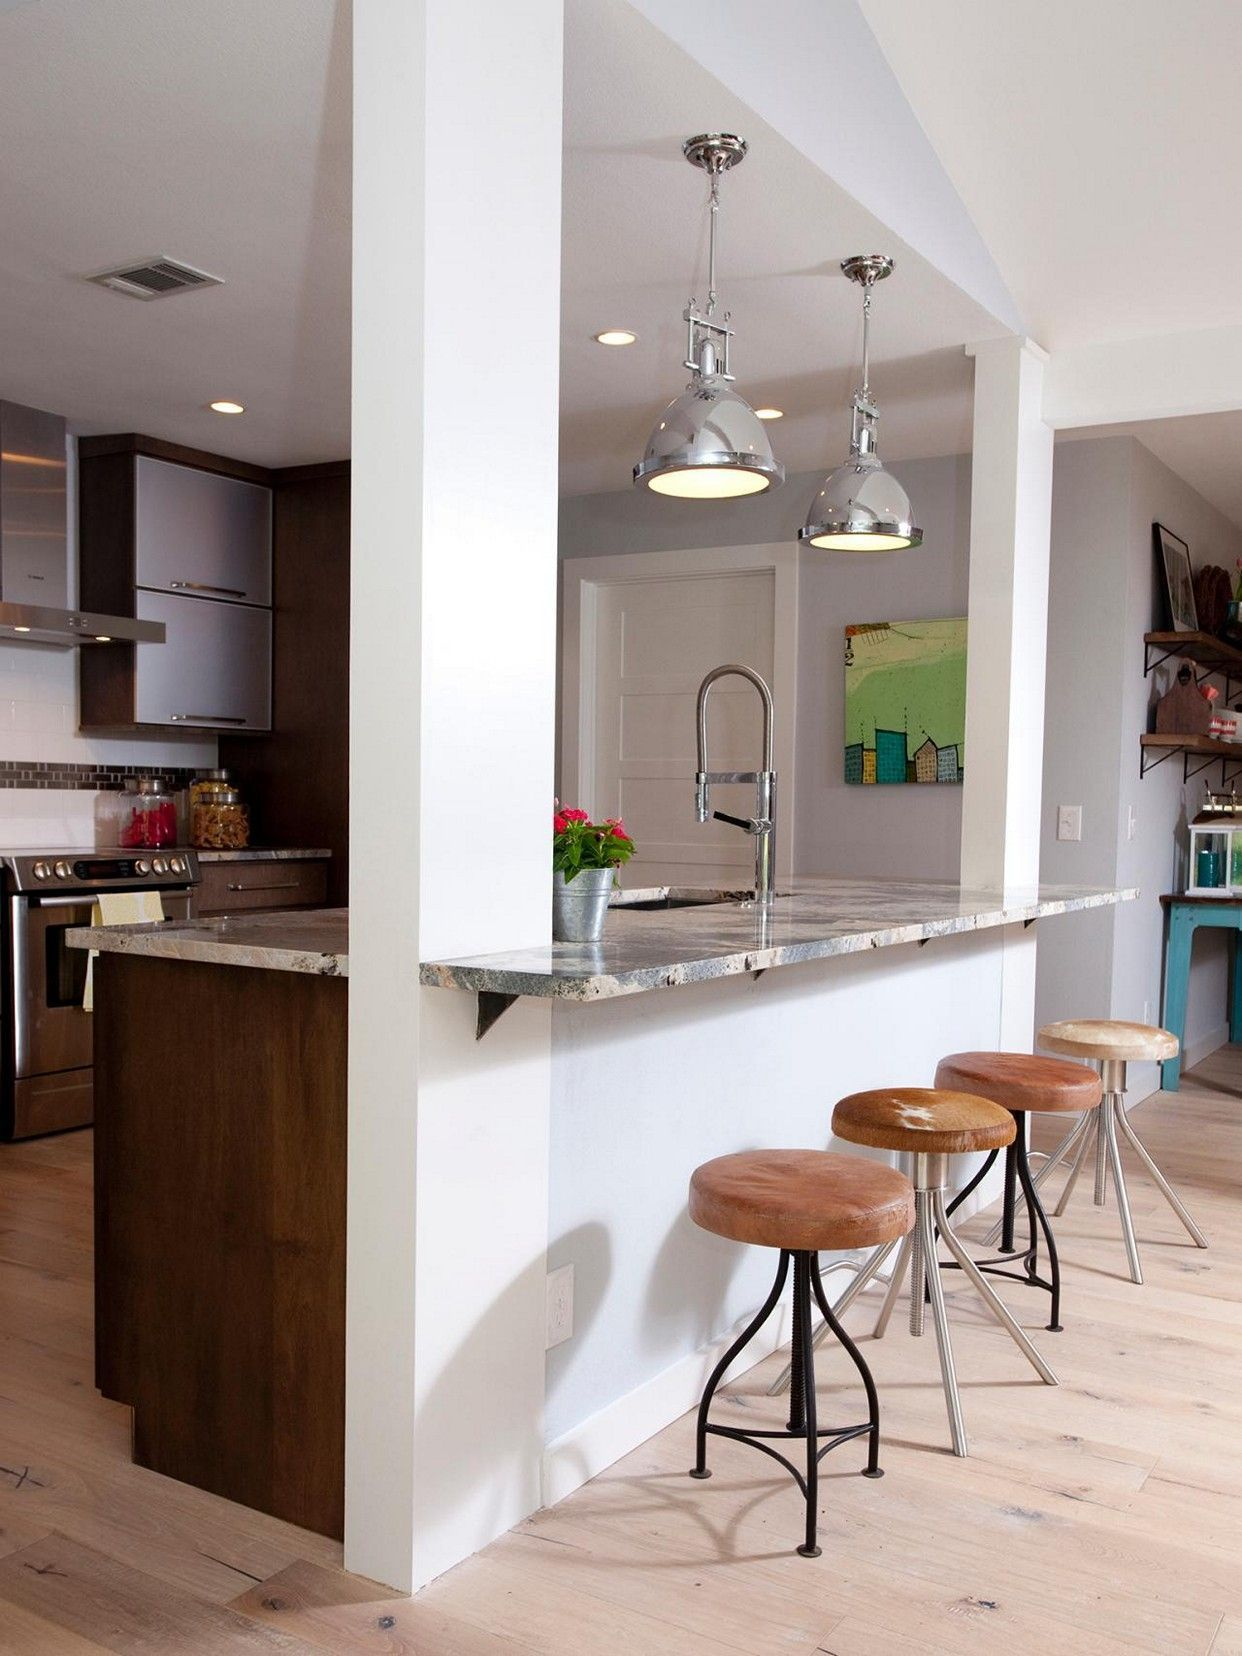 The Adorning Concepts Semi Open Kitchen Concepts India Development Ikeacountrykitchencabinets Kitchen Bar Design Small Kitchen Layouts Kitchen Design Small